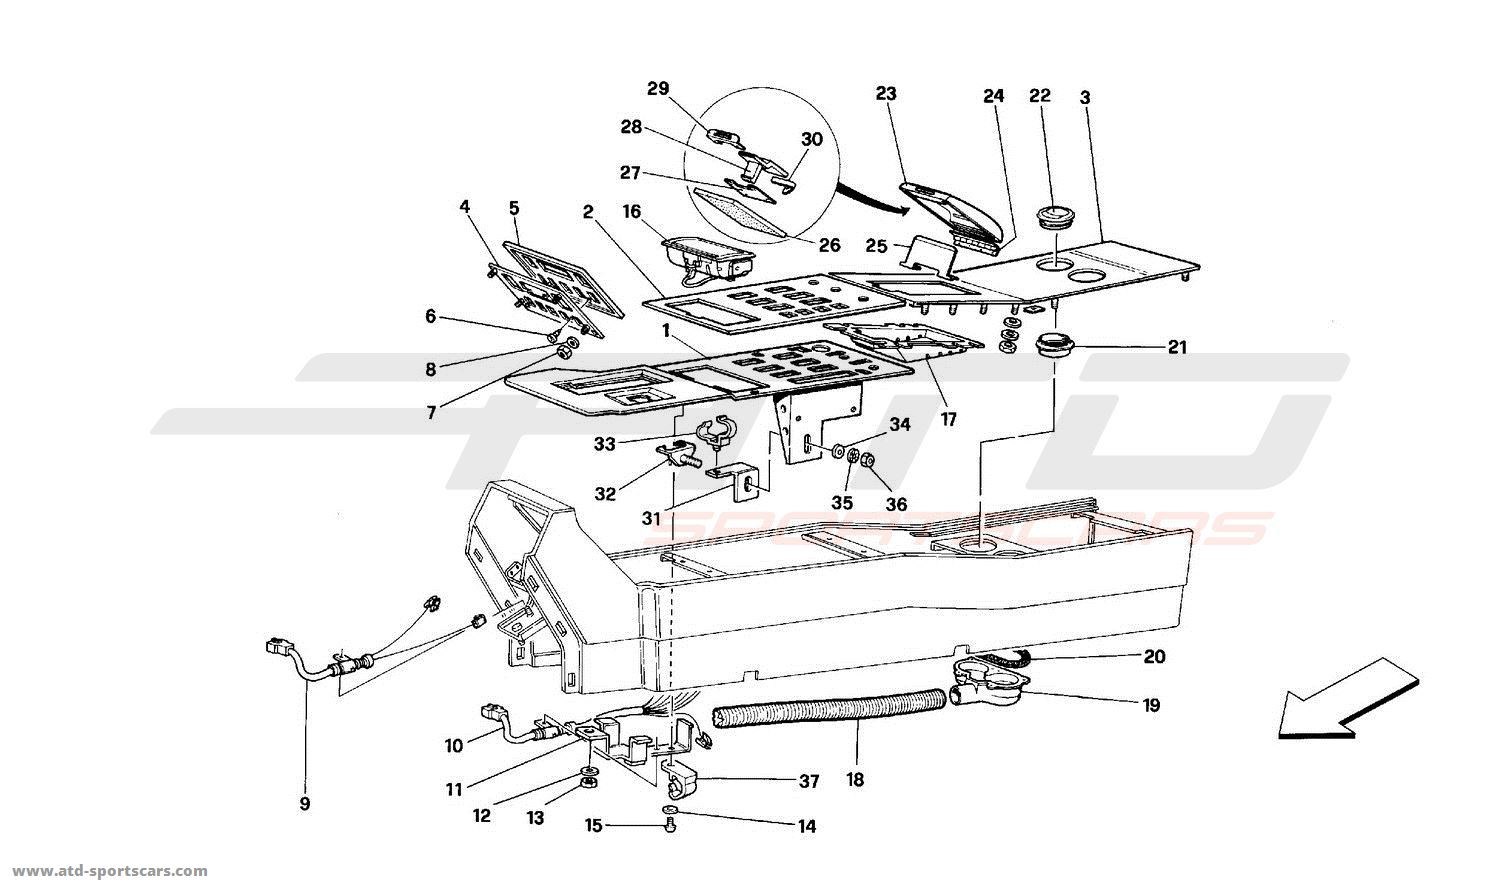 ferrari mondial t tunnel components coup parts at atd sportscars atd. Black Bedroom Furniture Sets. Home Design Ideas